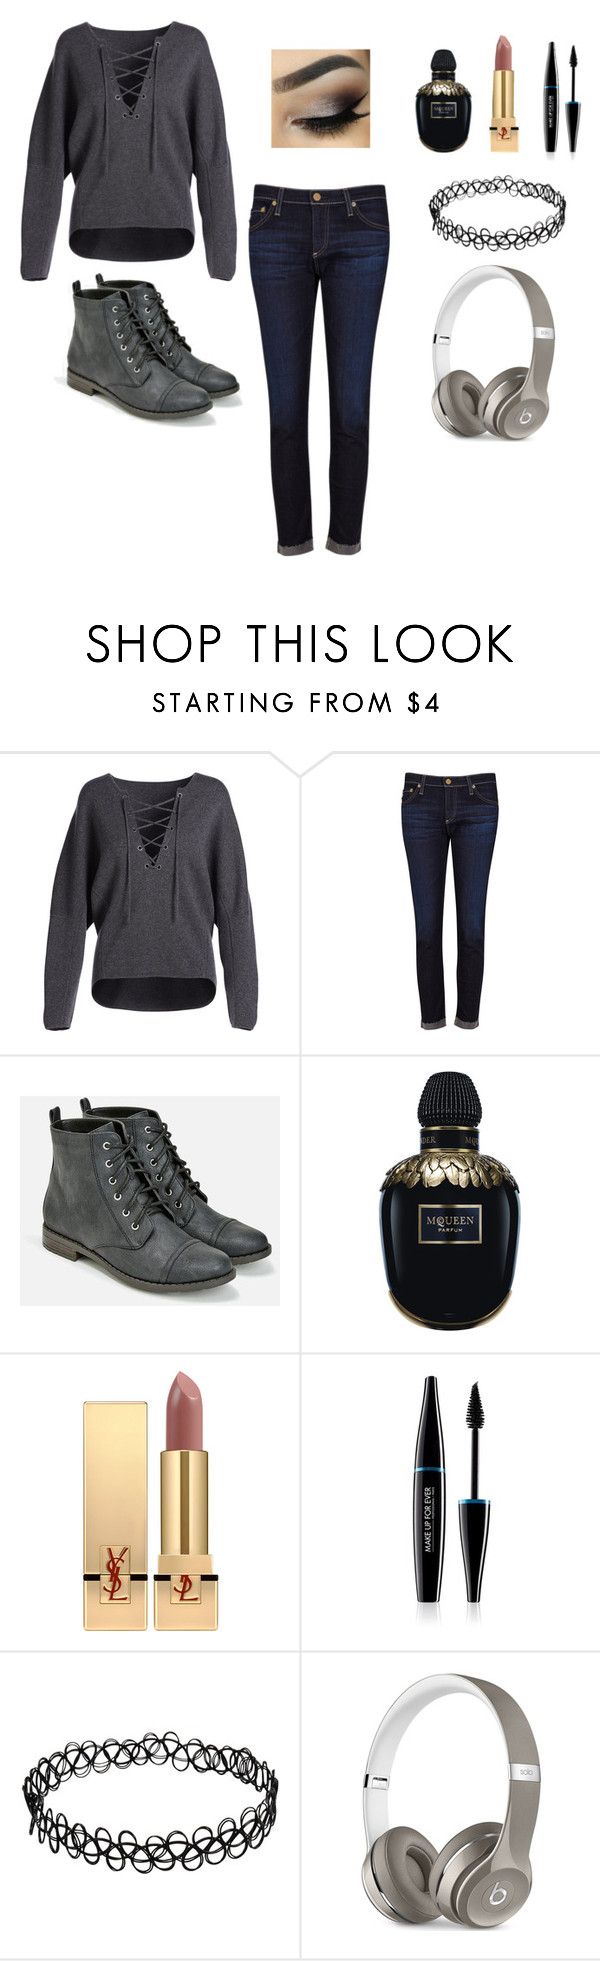 """""""Music Break/Stalling ~Carlisa"""" by carlisafights ❤ liked on Polyvore featuring Vince, AG Adriano Goldschmied, JustFab, Alexander McQueen, Yves Saint Laurent, MAKE UP FOR EVER and Beats by Dr. Dre"""